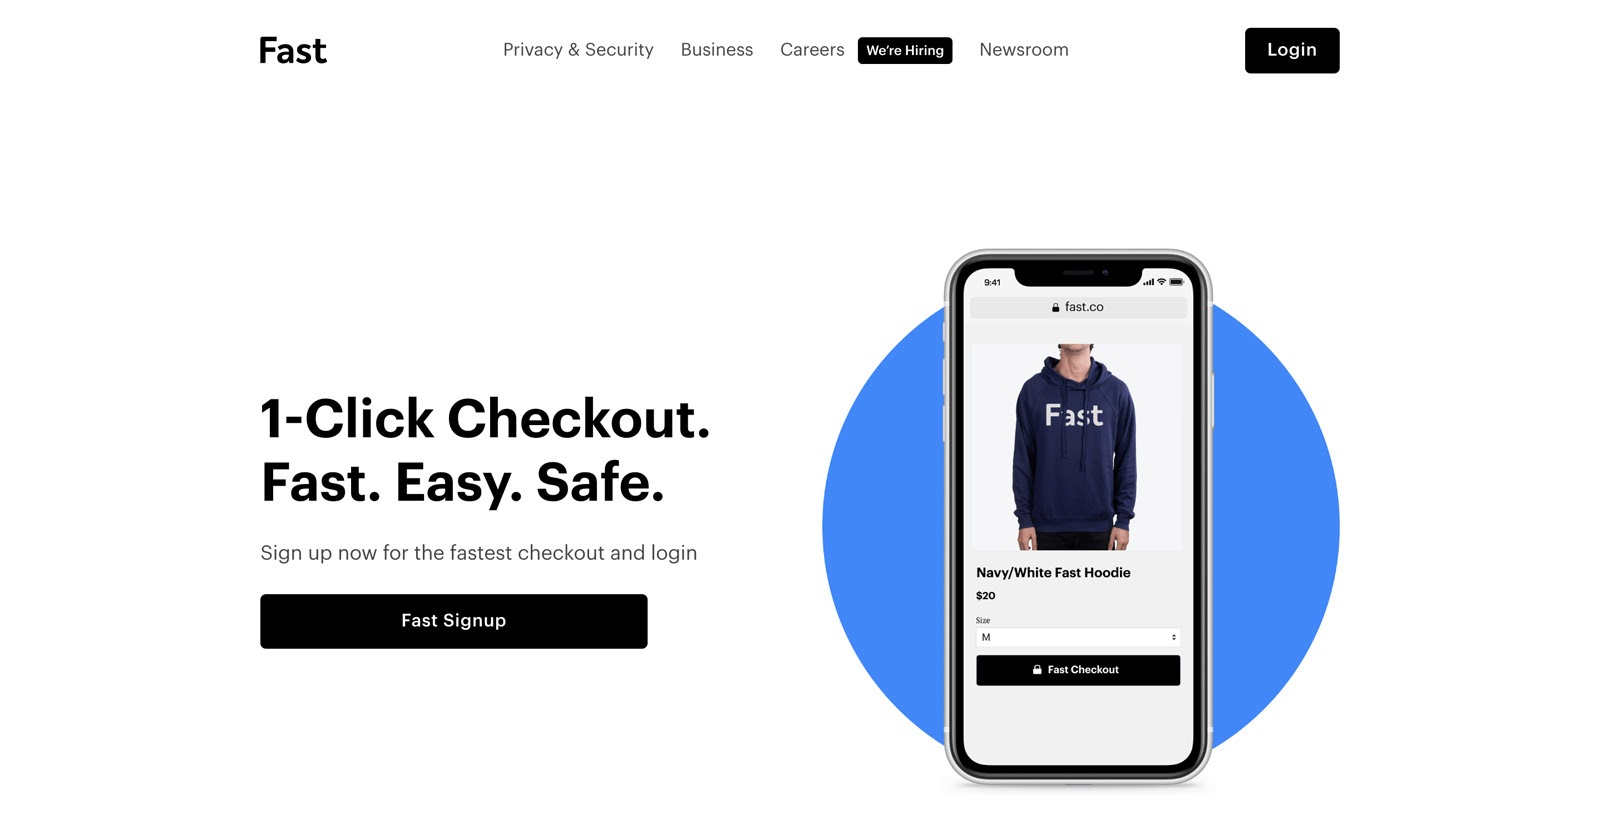 1 click checkout with fast